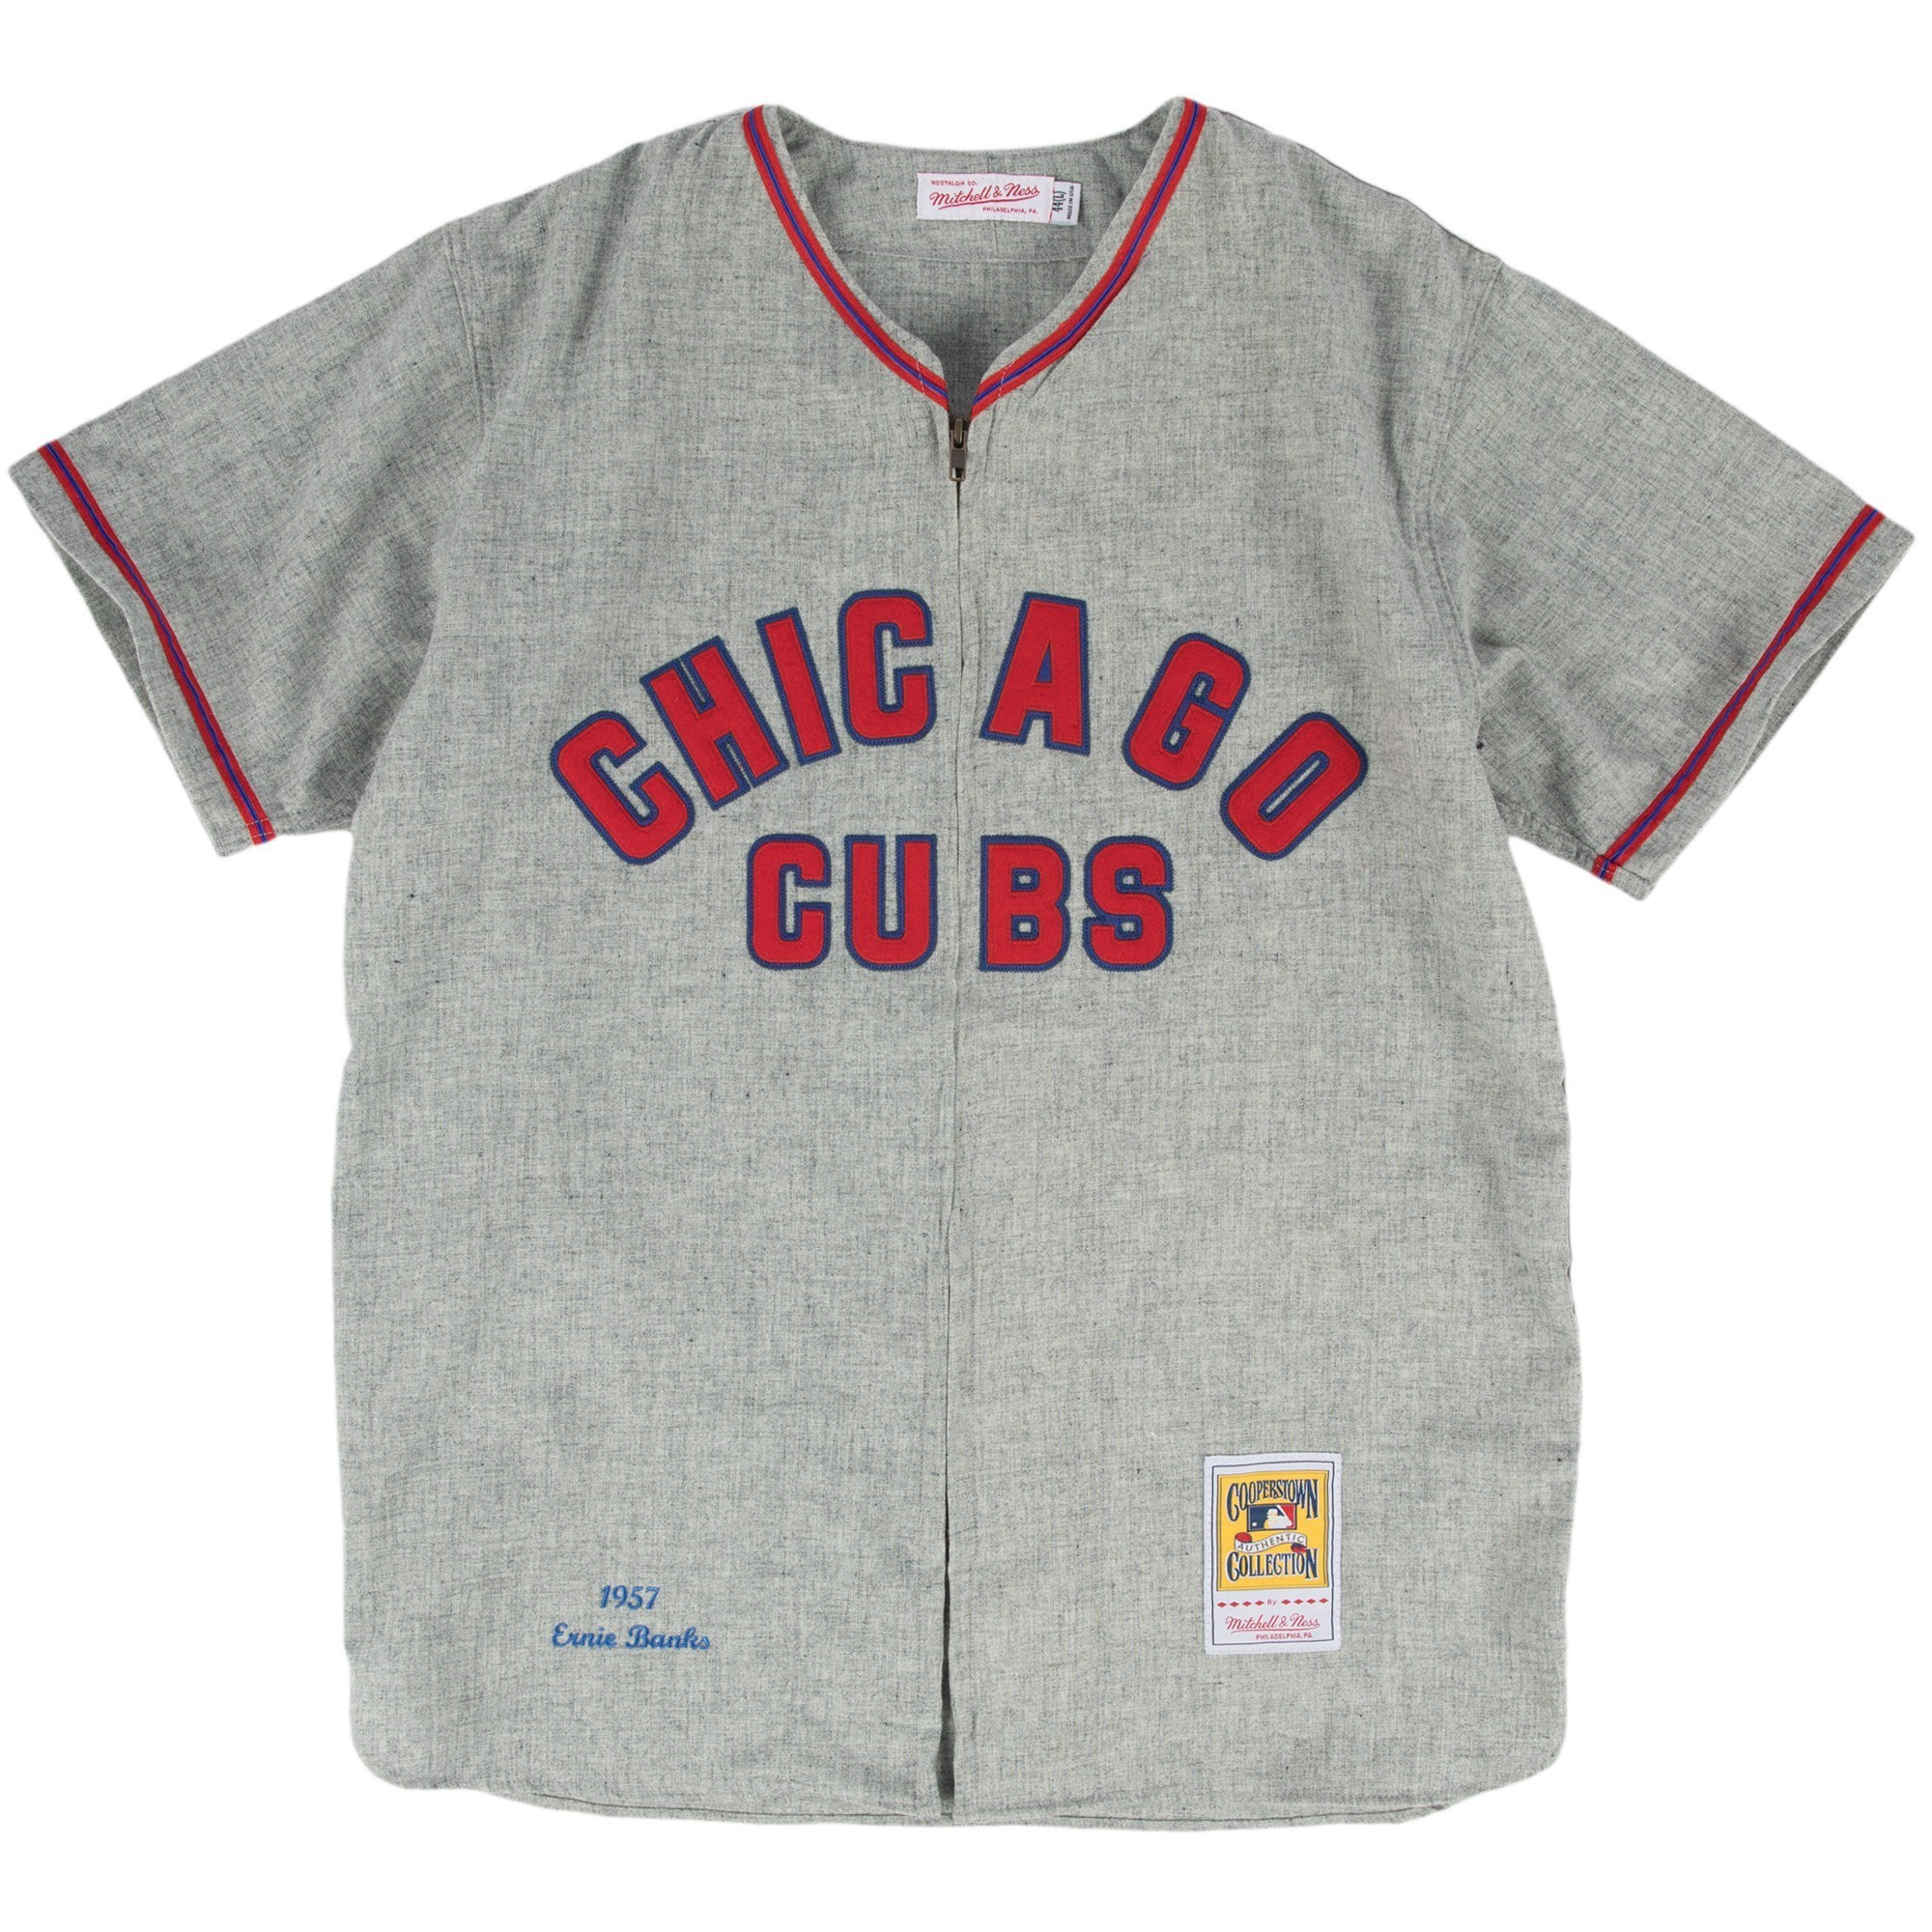 best loved 1c7dd f025a Details about Ernie Banks Chicago Cubs Mitchell & Ness Authentic MLB 1957  Zip Front Jersey